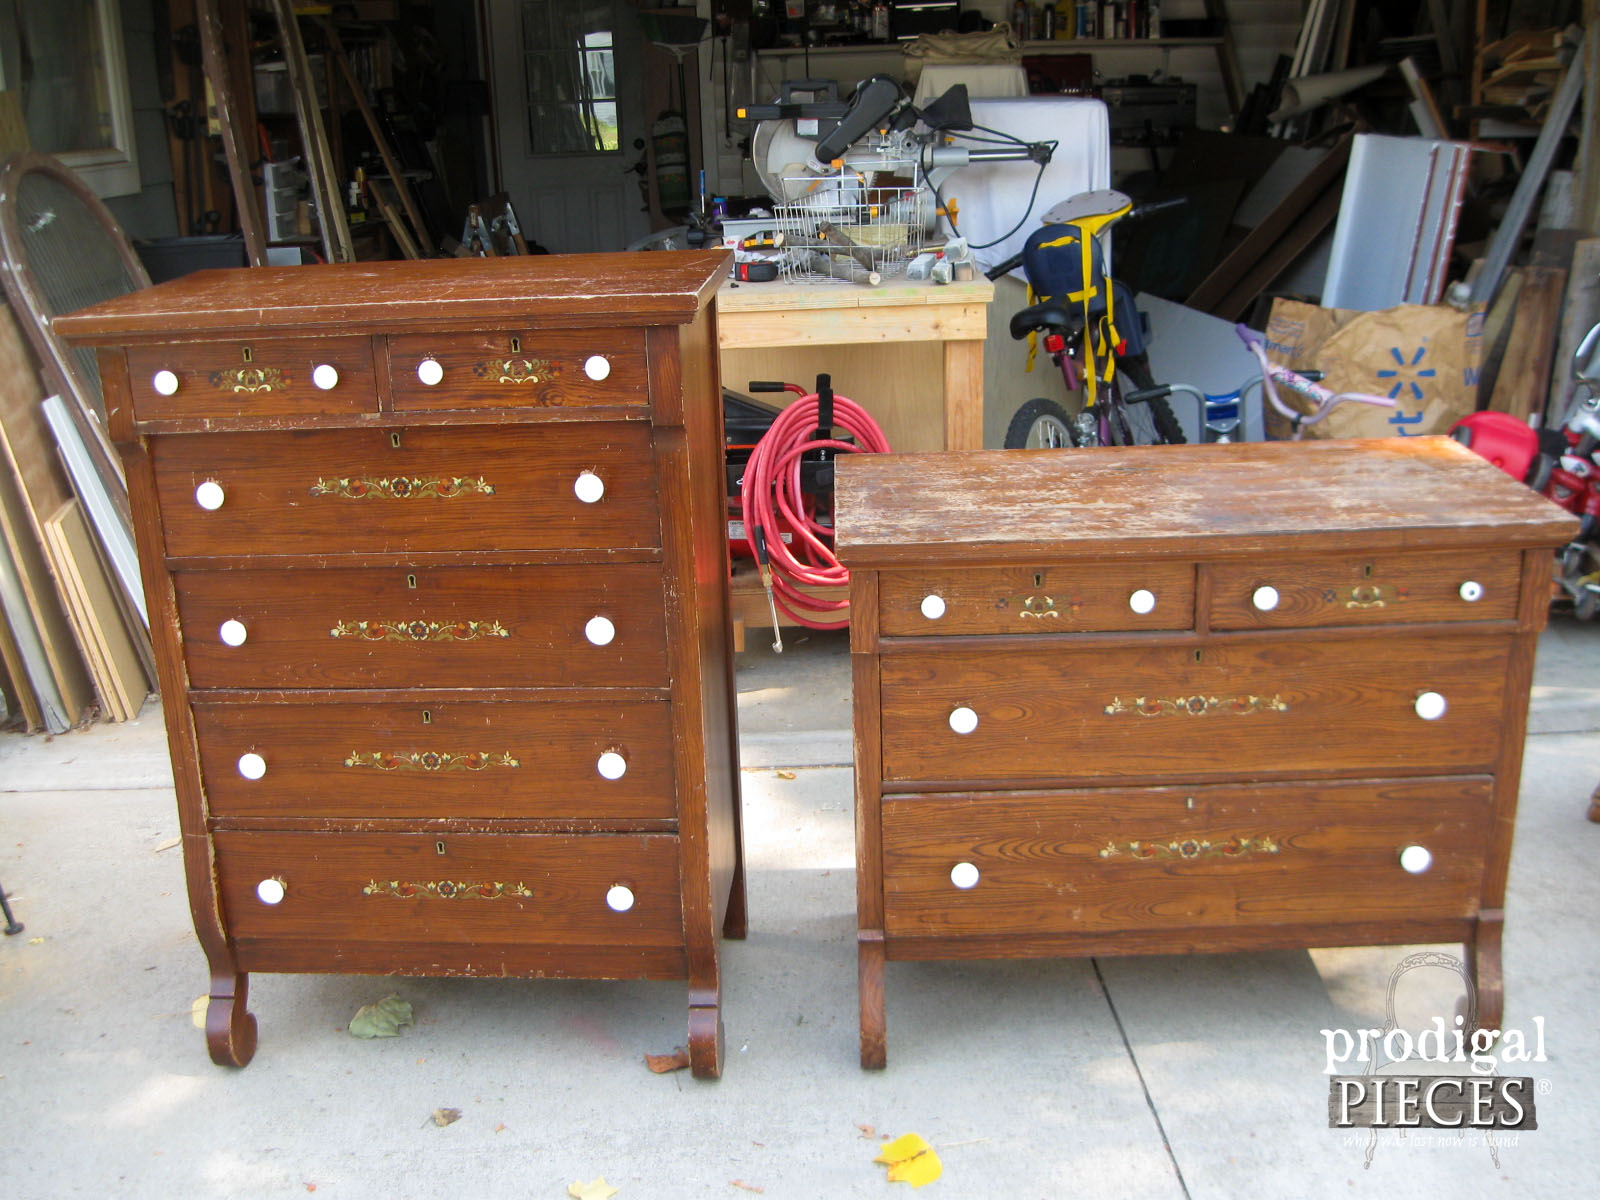 Empire Chest and Dresser Set Before Makeover | Prodigal Pieces | www.prodigalpieces.com